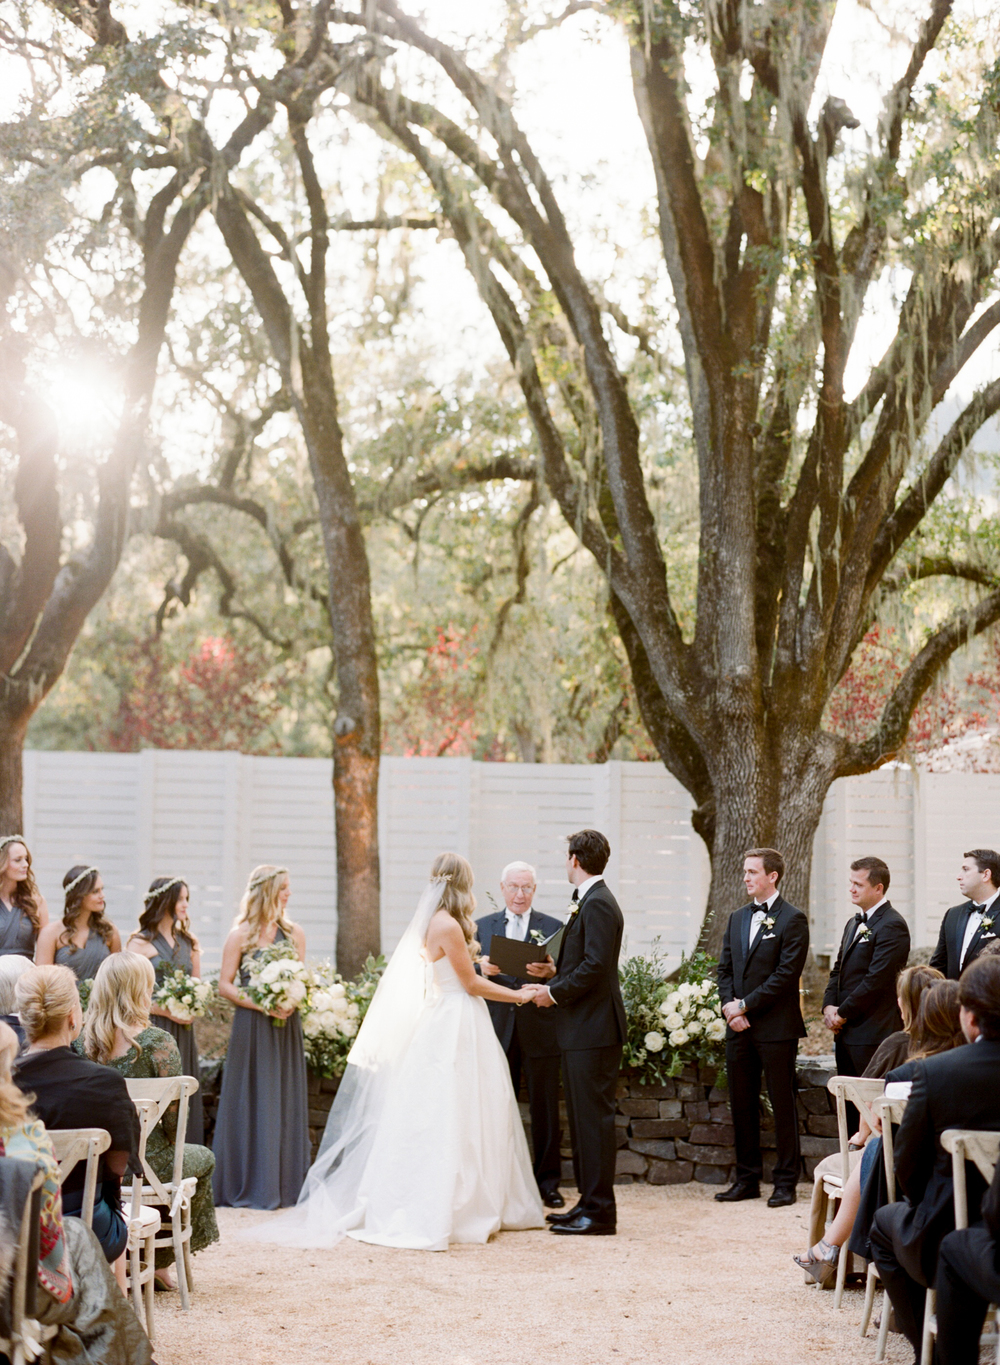 SylvieGil-Durham-Ranch-Organic-Ethereal-Rustic-Ceremony-Wedding